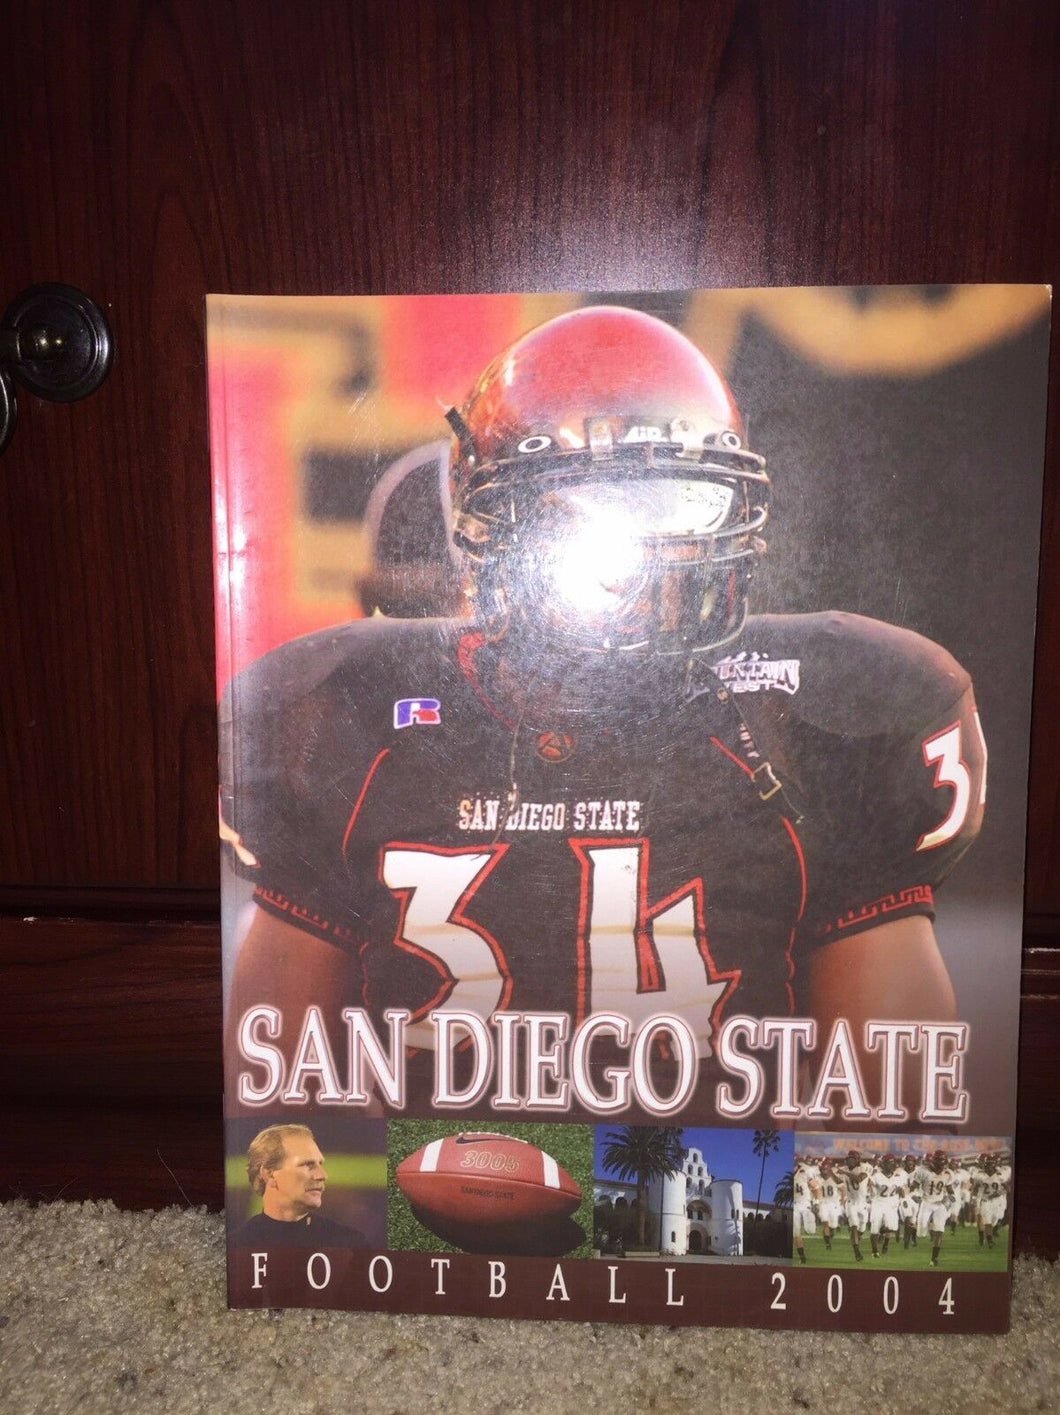 2004 SAN DIEGO STATE COLLEGE FOOTBALL MEDIA GUIDE - b3